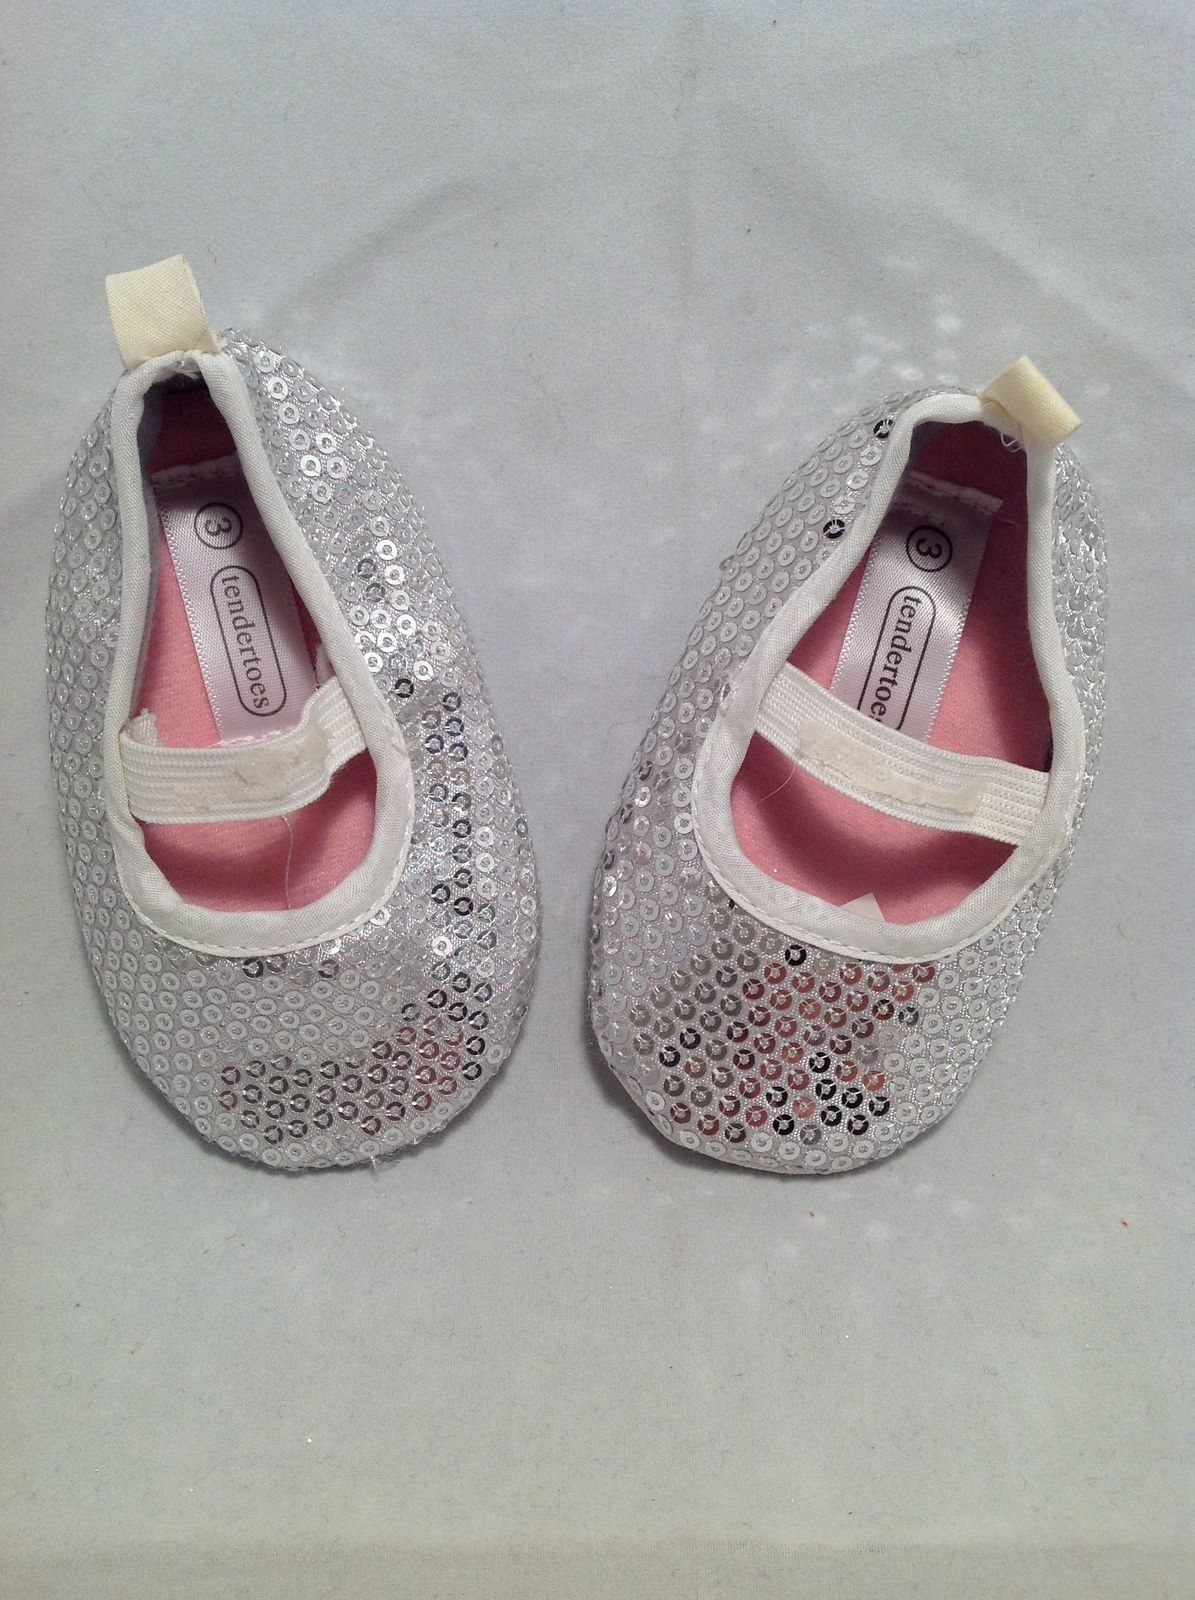 Newborn girl baby shoes booties set of 3 size 0 3 months